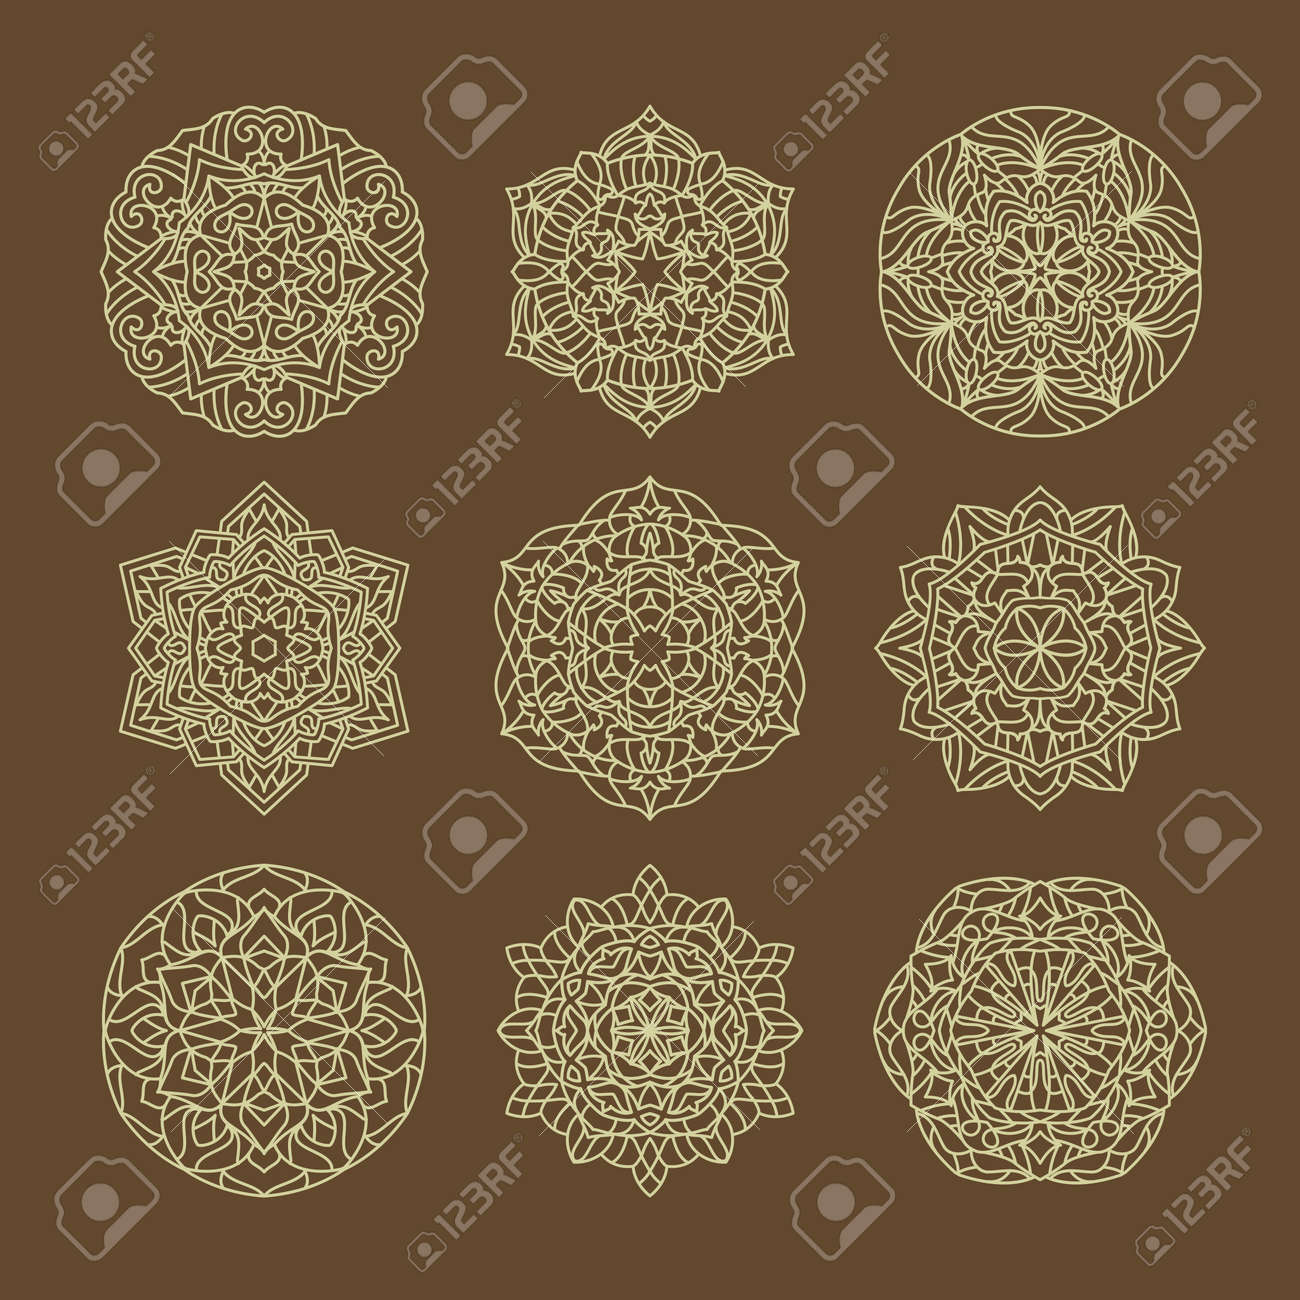 Ornament round set with mandala with arabic style ornament vector illustration - 167236343